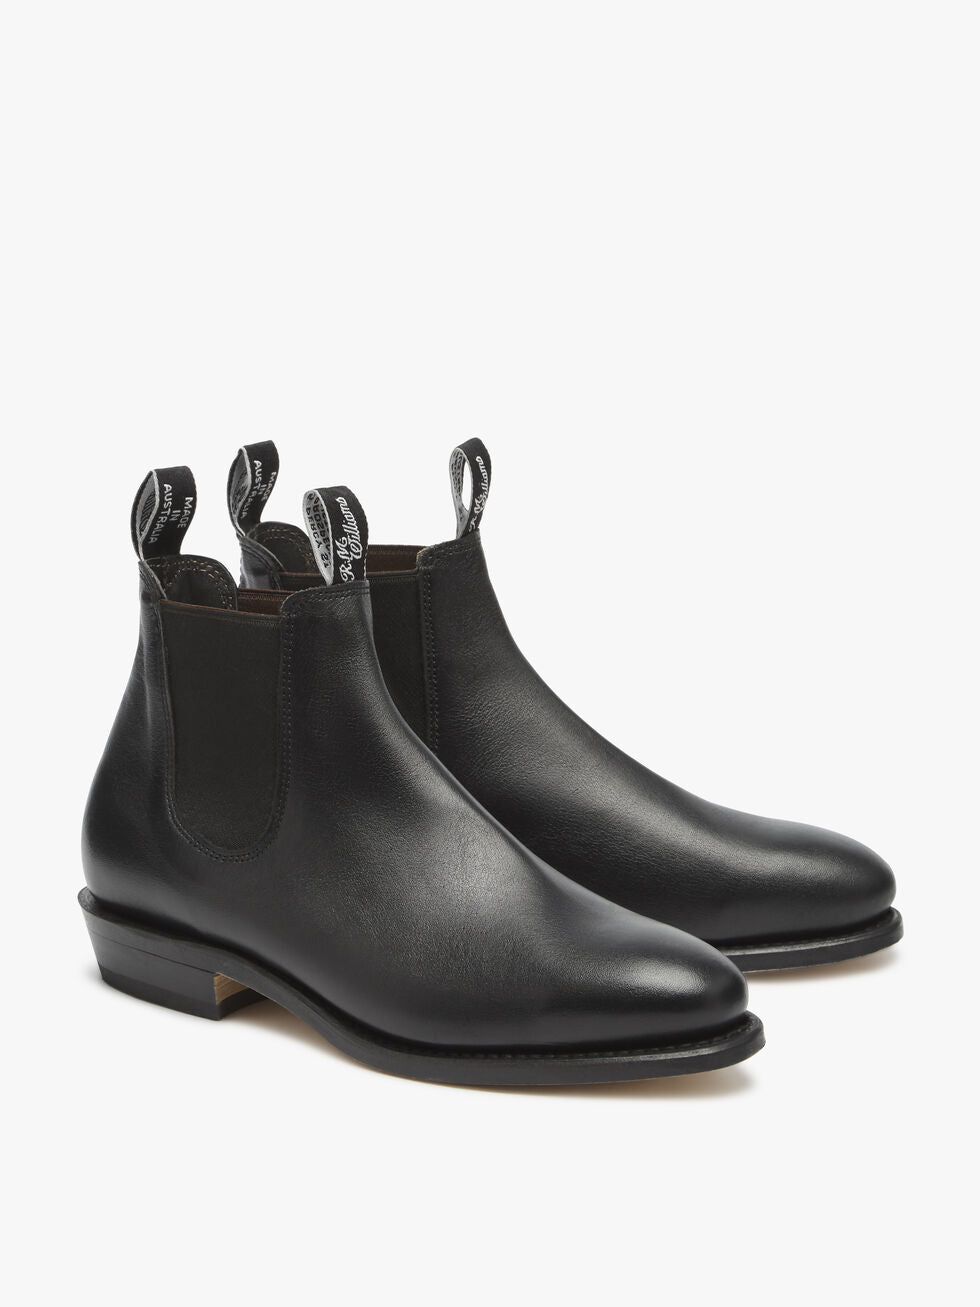 RM Williams Adelaide Boot (4498699780233)